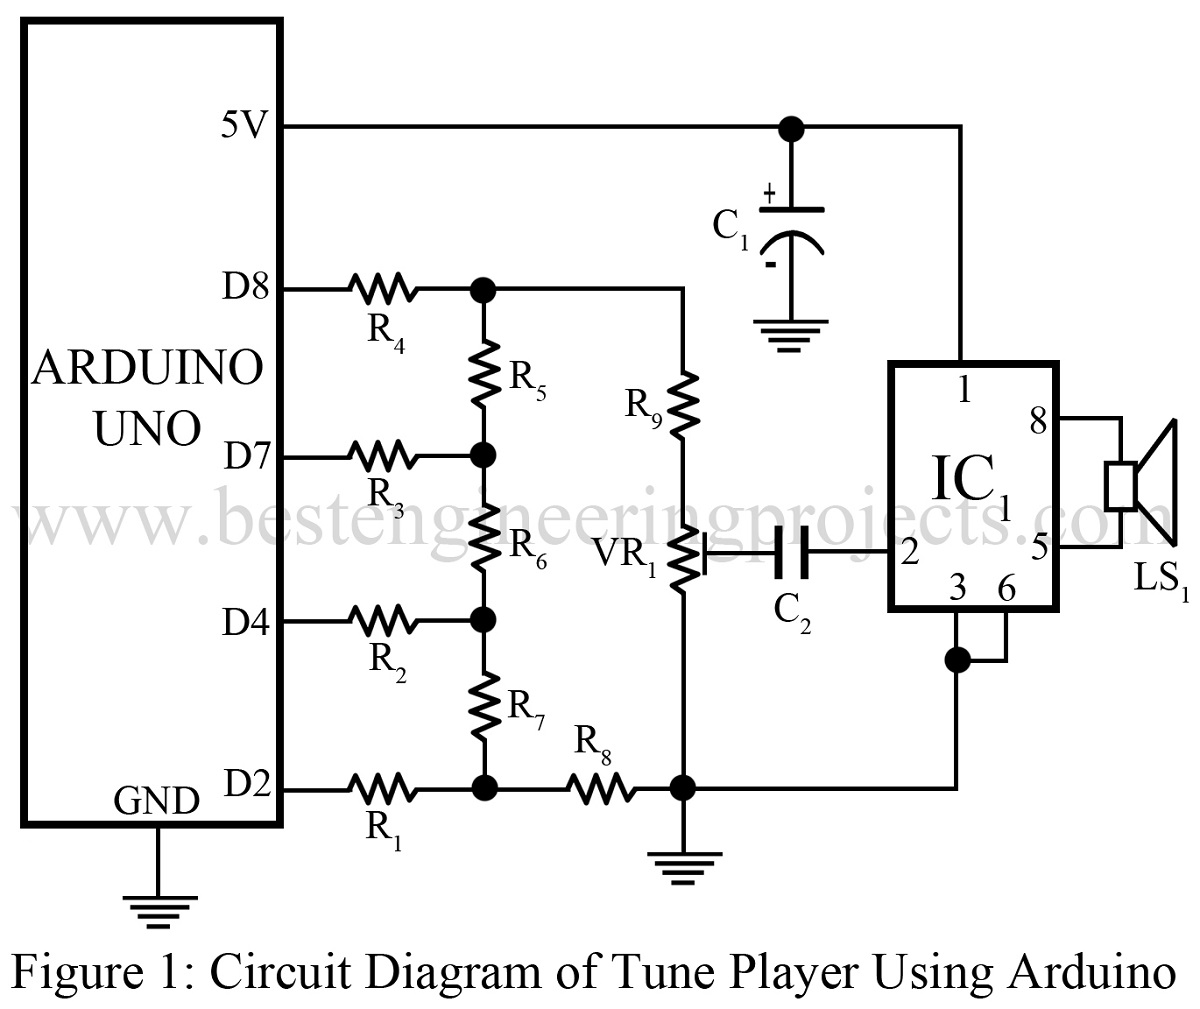 Tune player using arduino best engineering projects